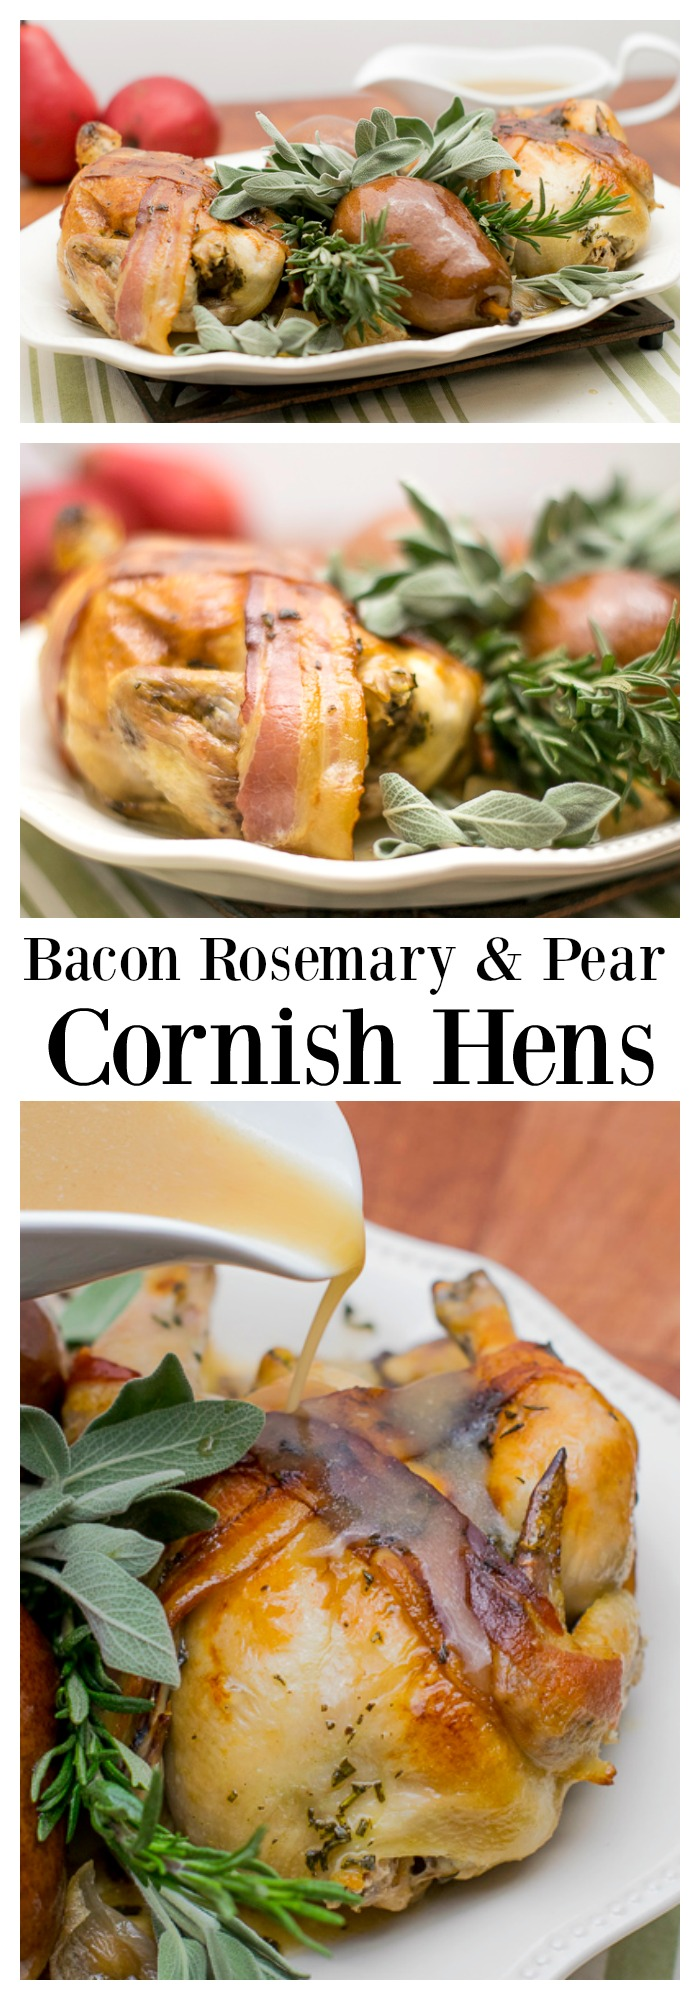 #ad #holidayhens This wonderful rustic winter recipe for Cornish Hens made with fresh rosemary, sage and garlic and topped with bacon will be the hit of your holiday party!